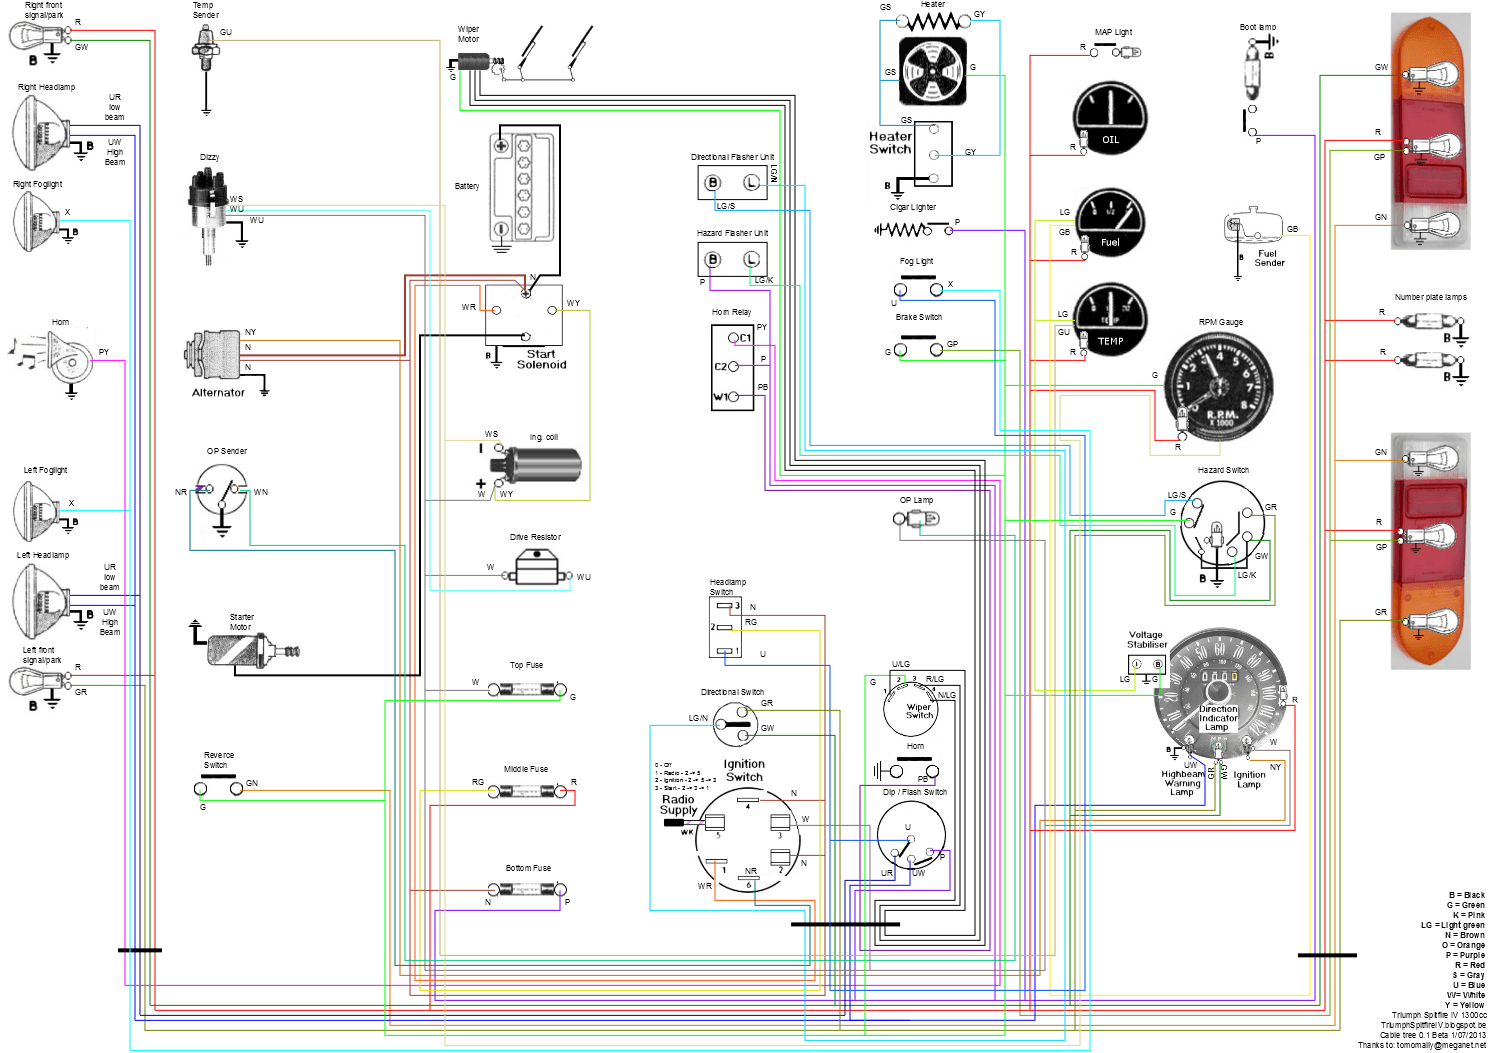 wiring diagram 1972 triumph gt6 oldsmobile cutlass wiring